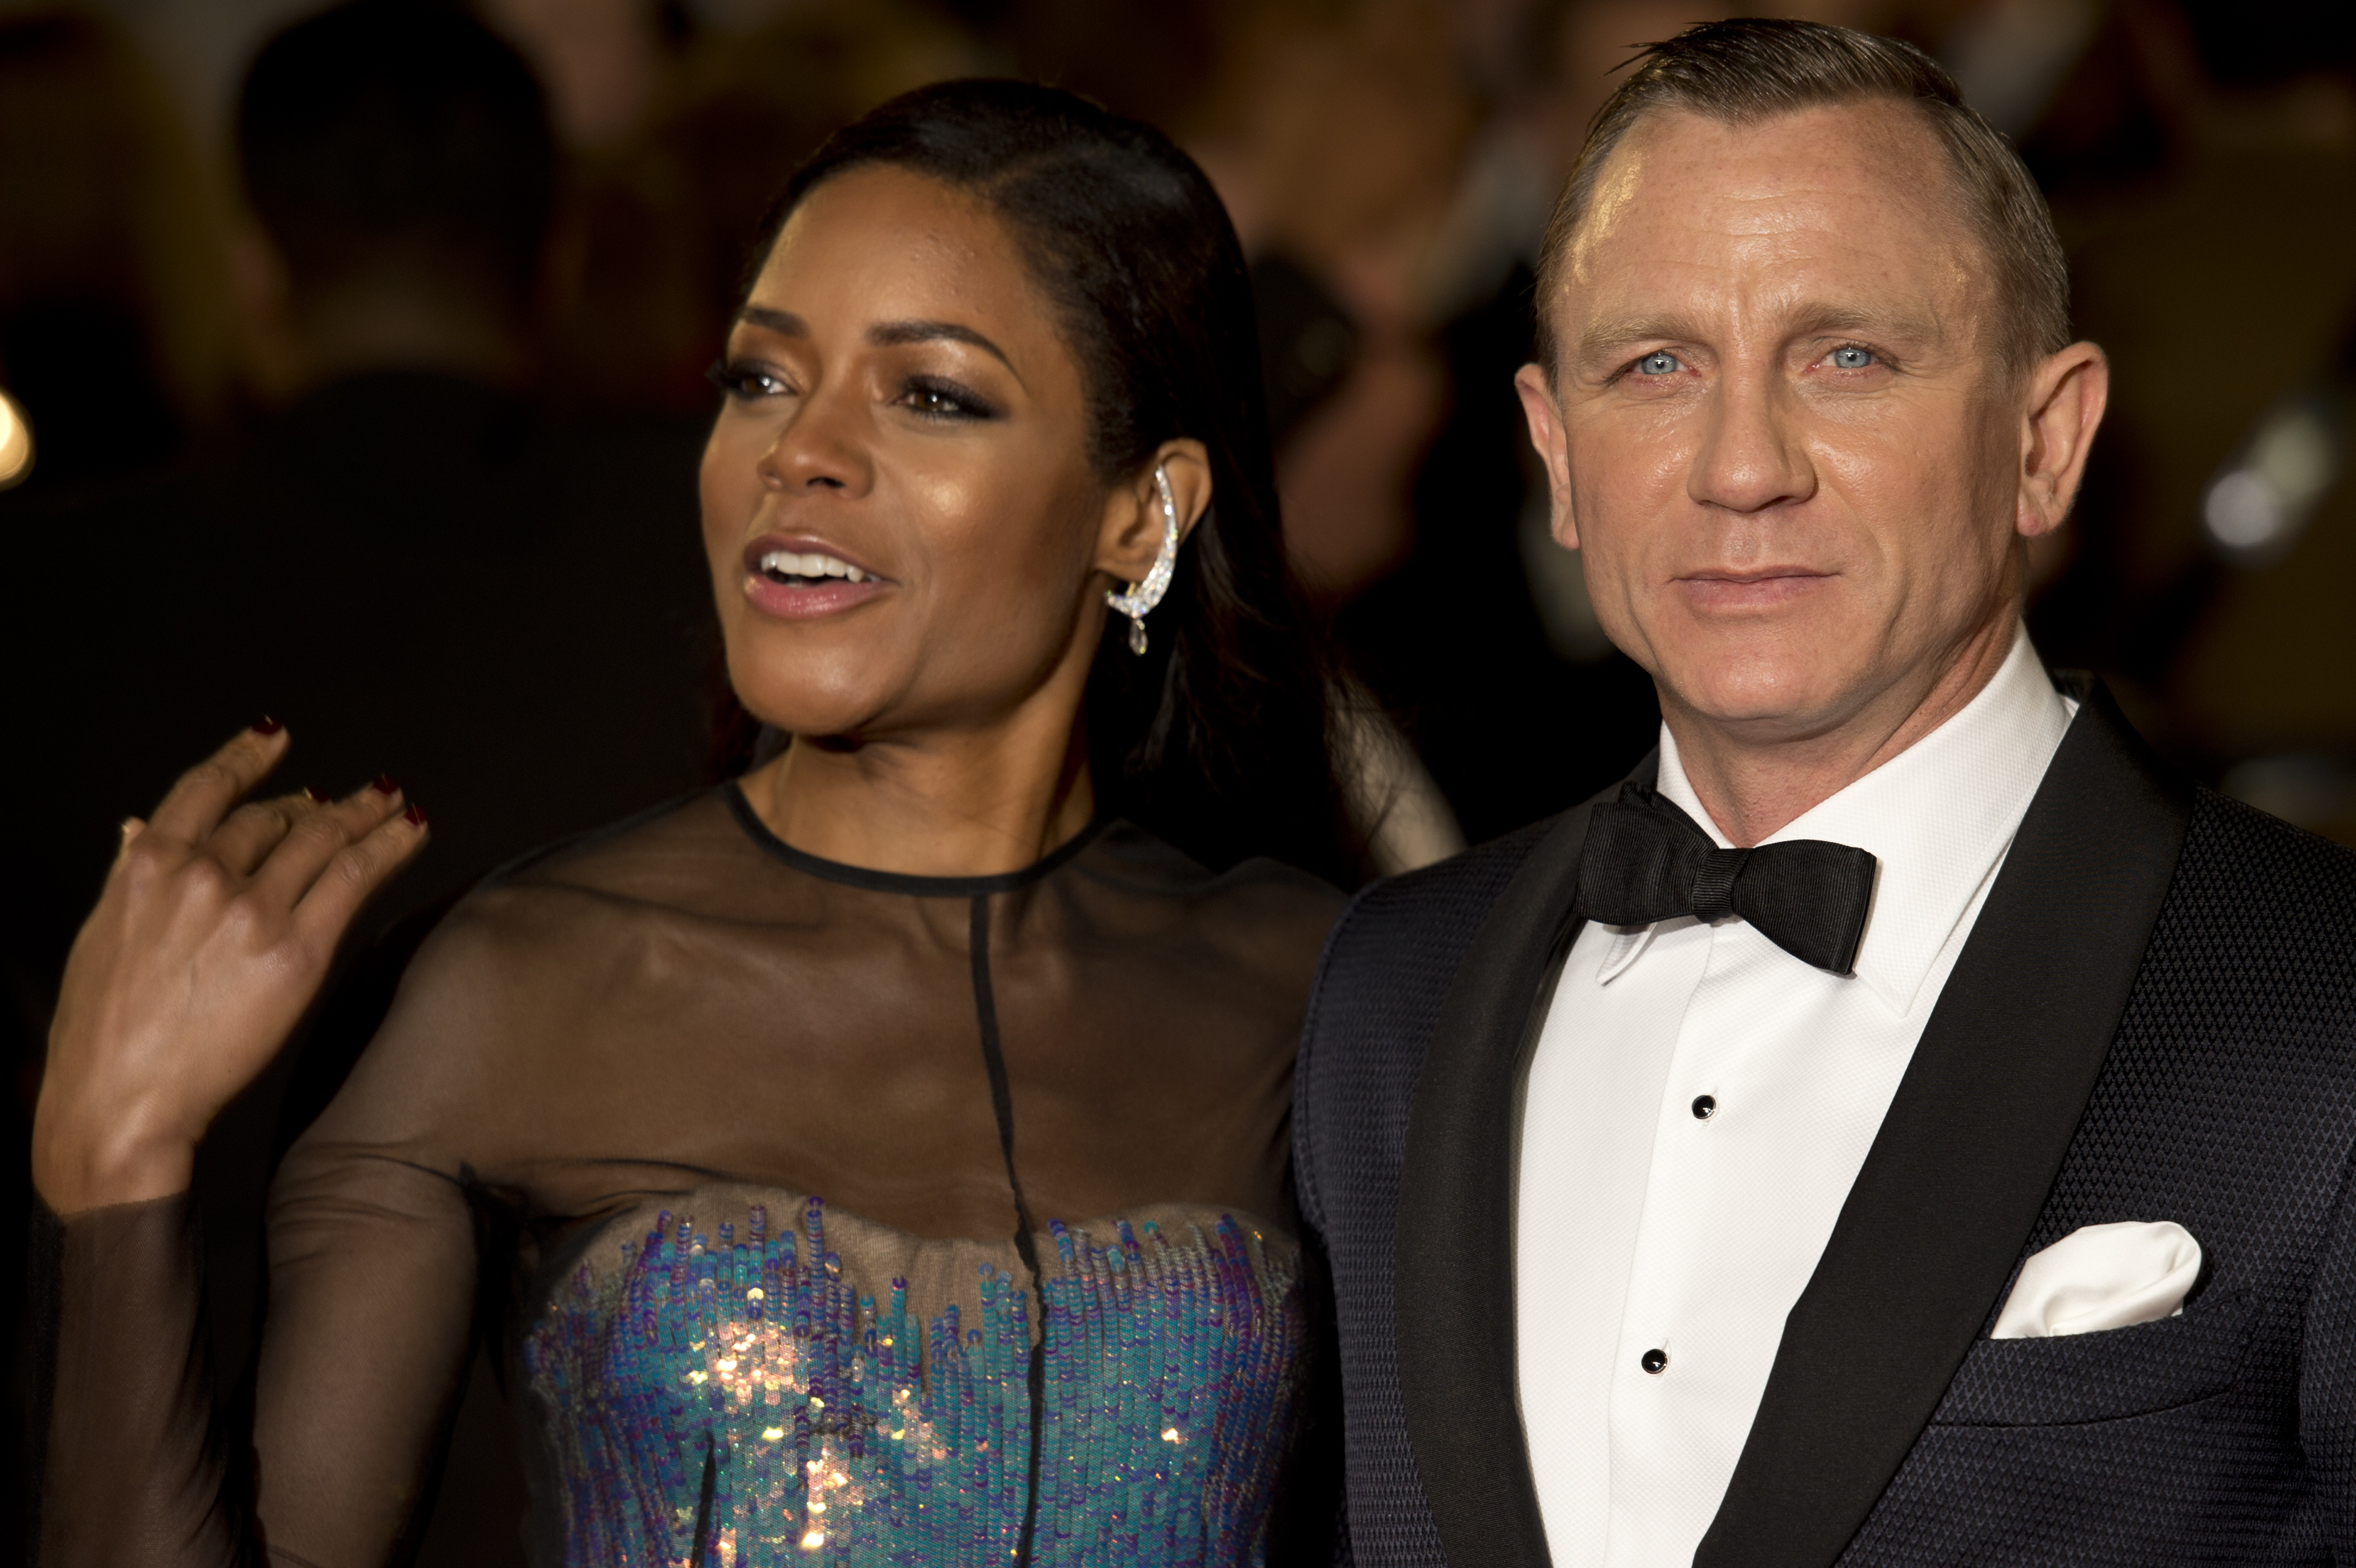 Beauty Highs Daily Top 10: Naomie Harris at Skyfall Premiere, Gel Manicures Could be Damaging, More